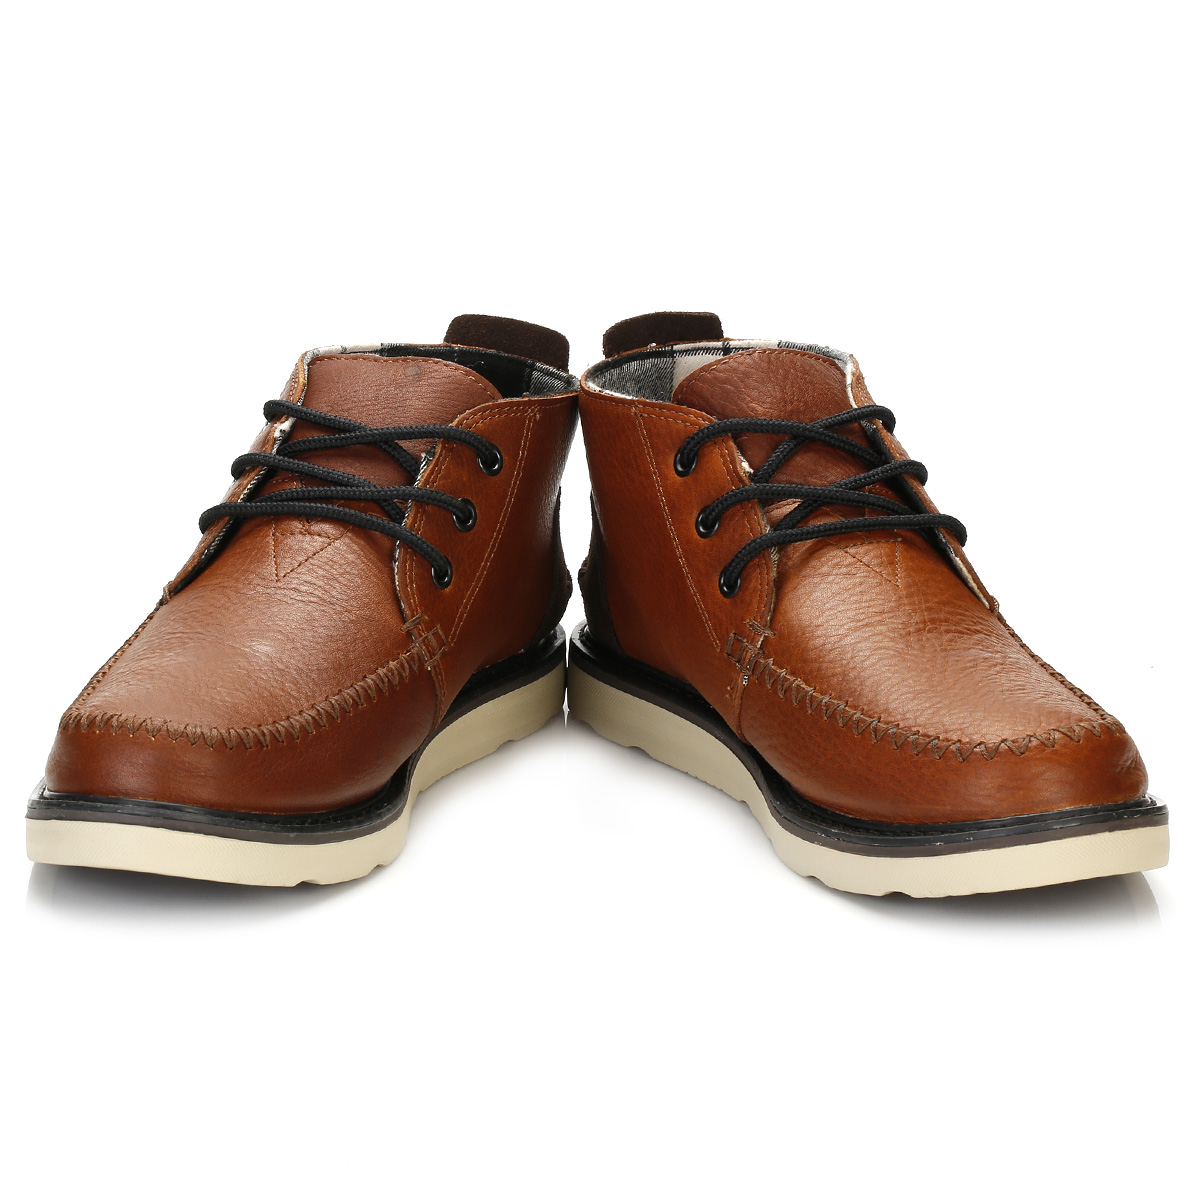 toms mens ankle boots brown waterproof chukka style lace